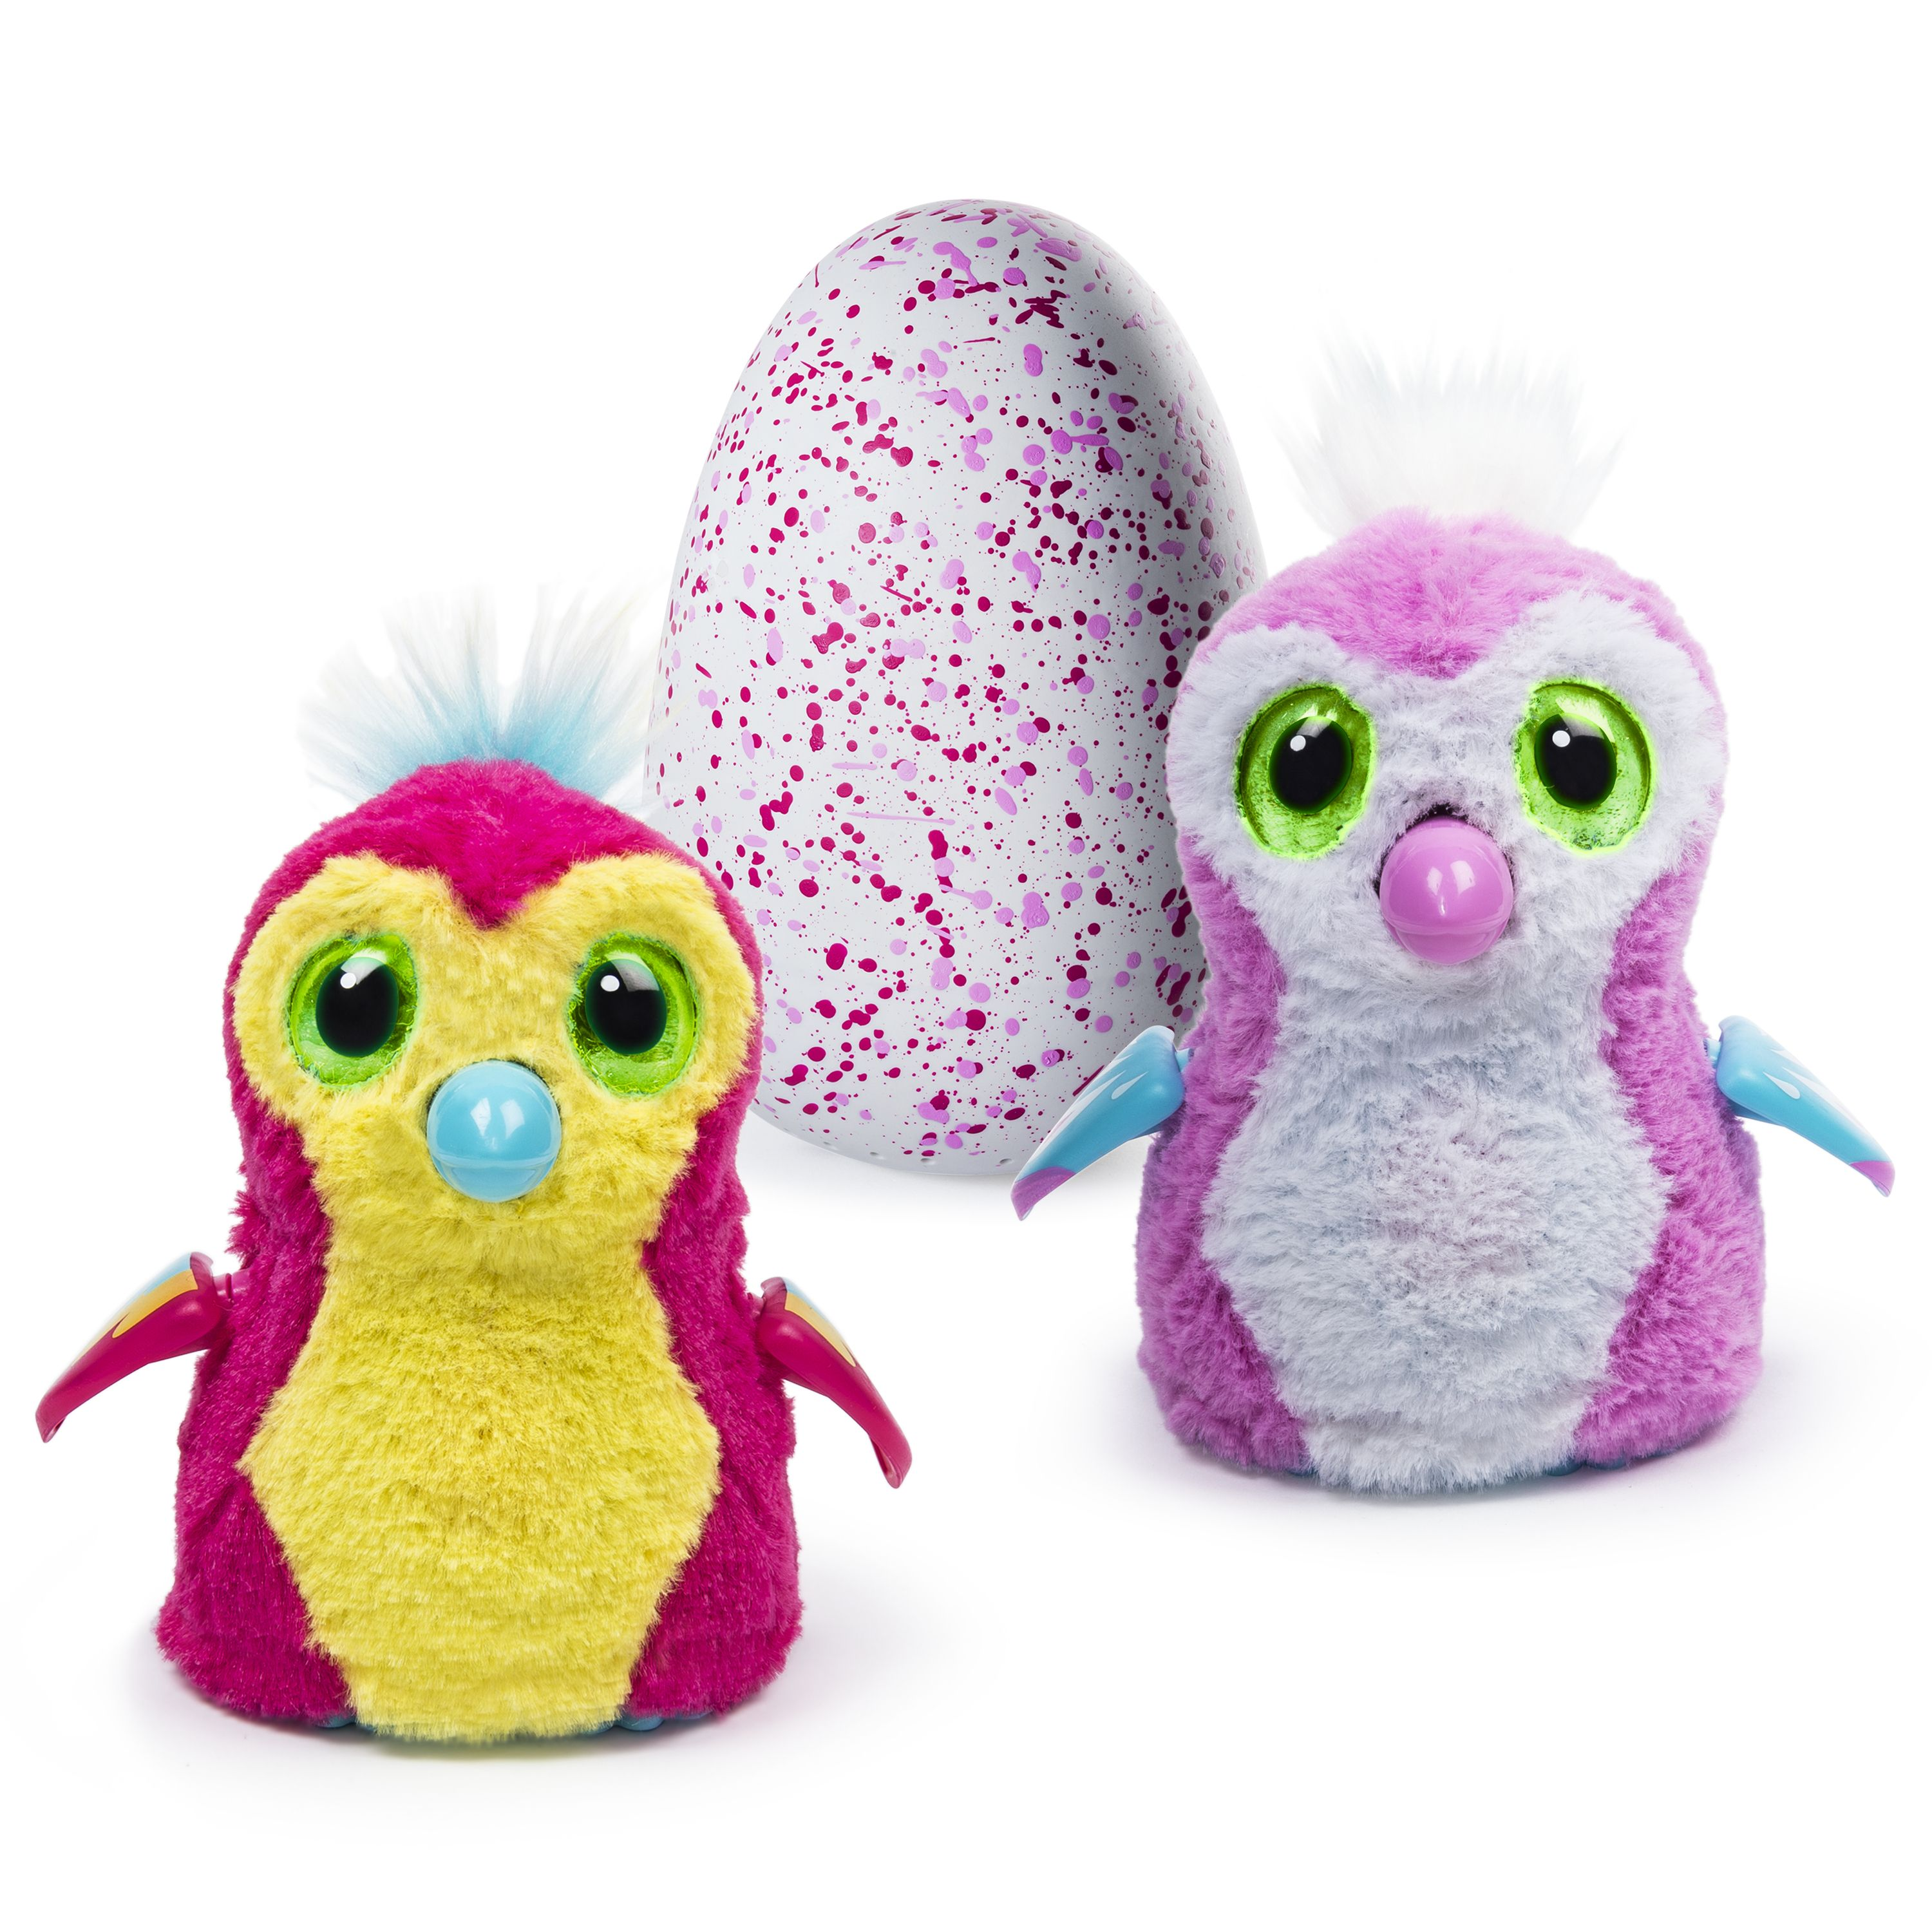 Hatchimals, Hatching Egg, Interactive Creature, Penguala, Pink Egg by Spin Master